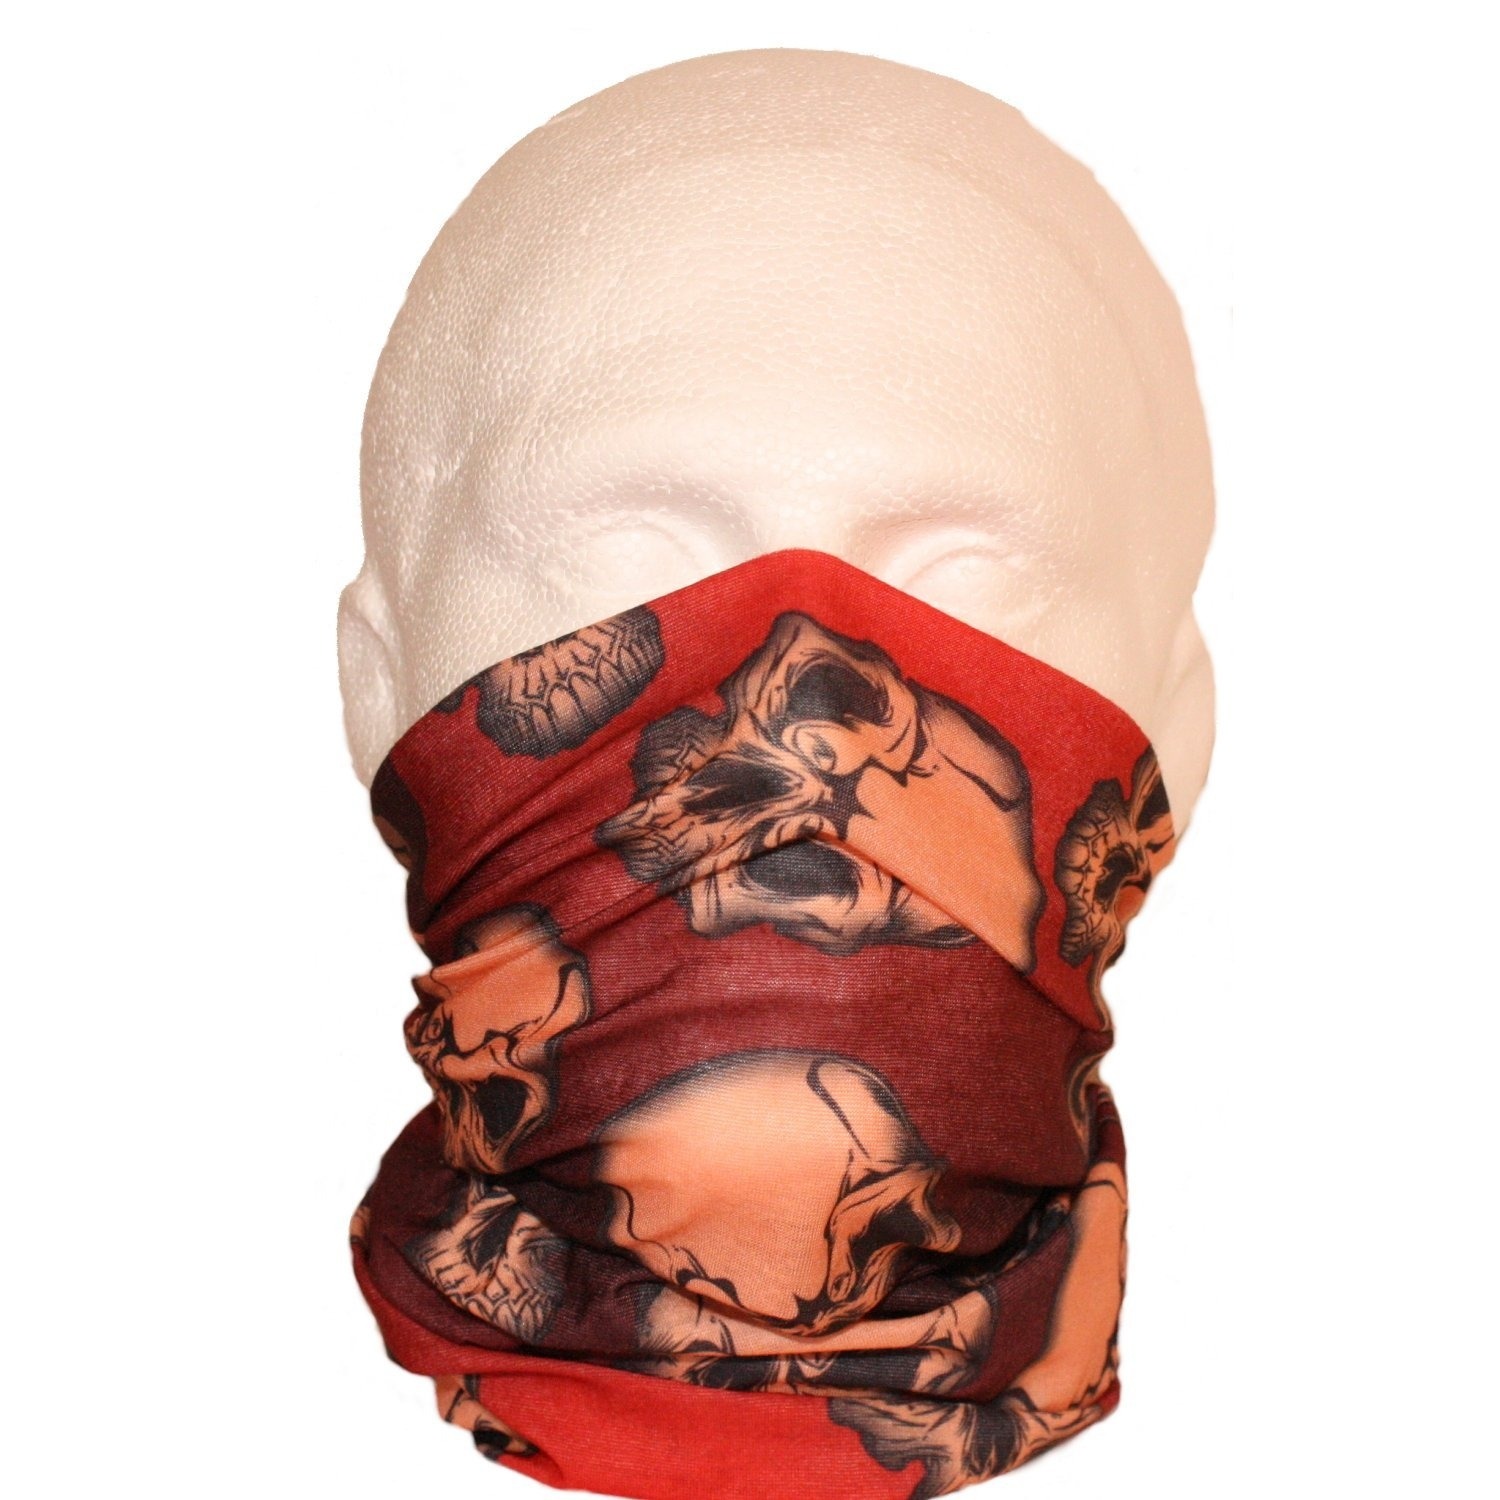 12 in 1 Neck Tube Snood Scarf Red Jumbled Skulls